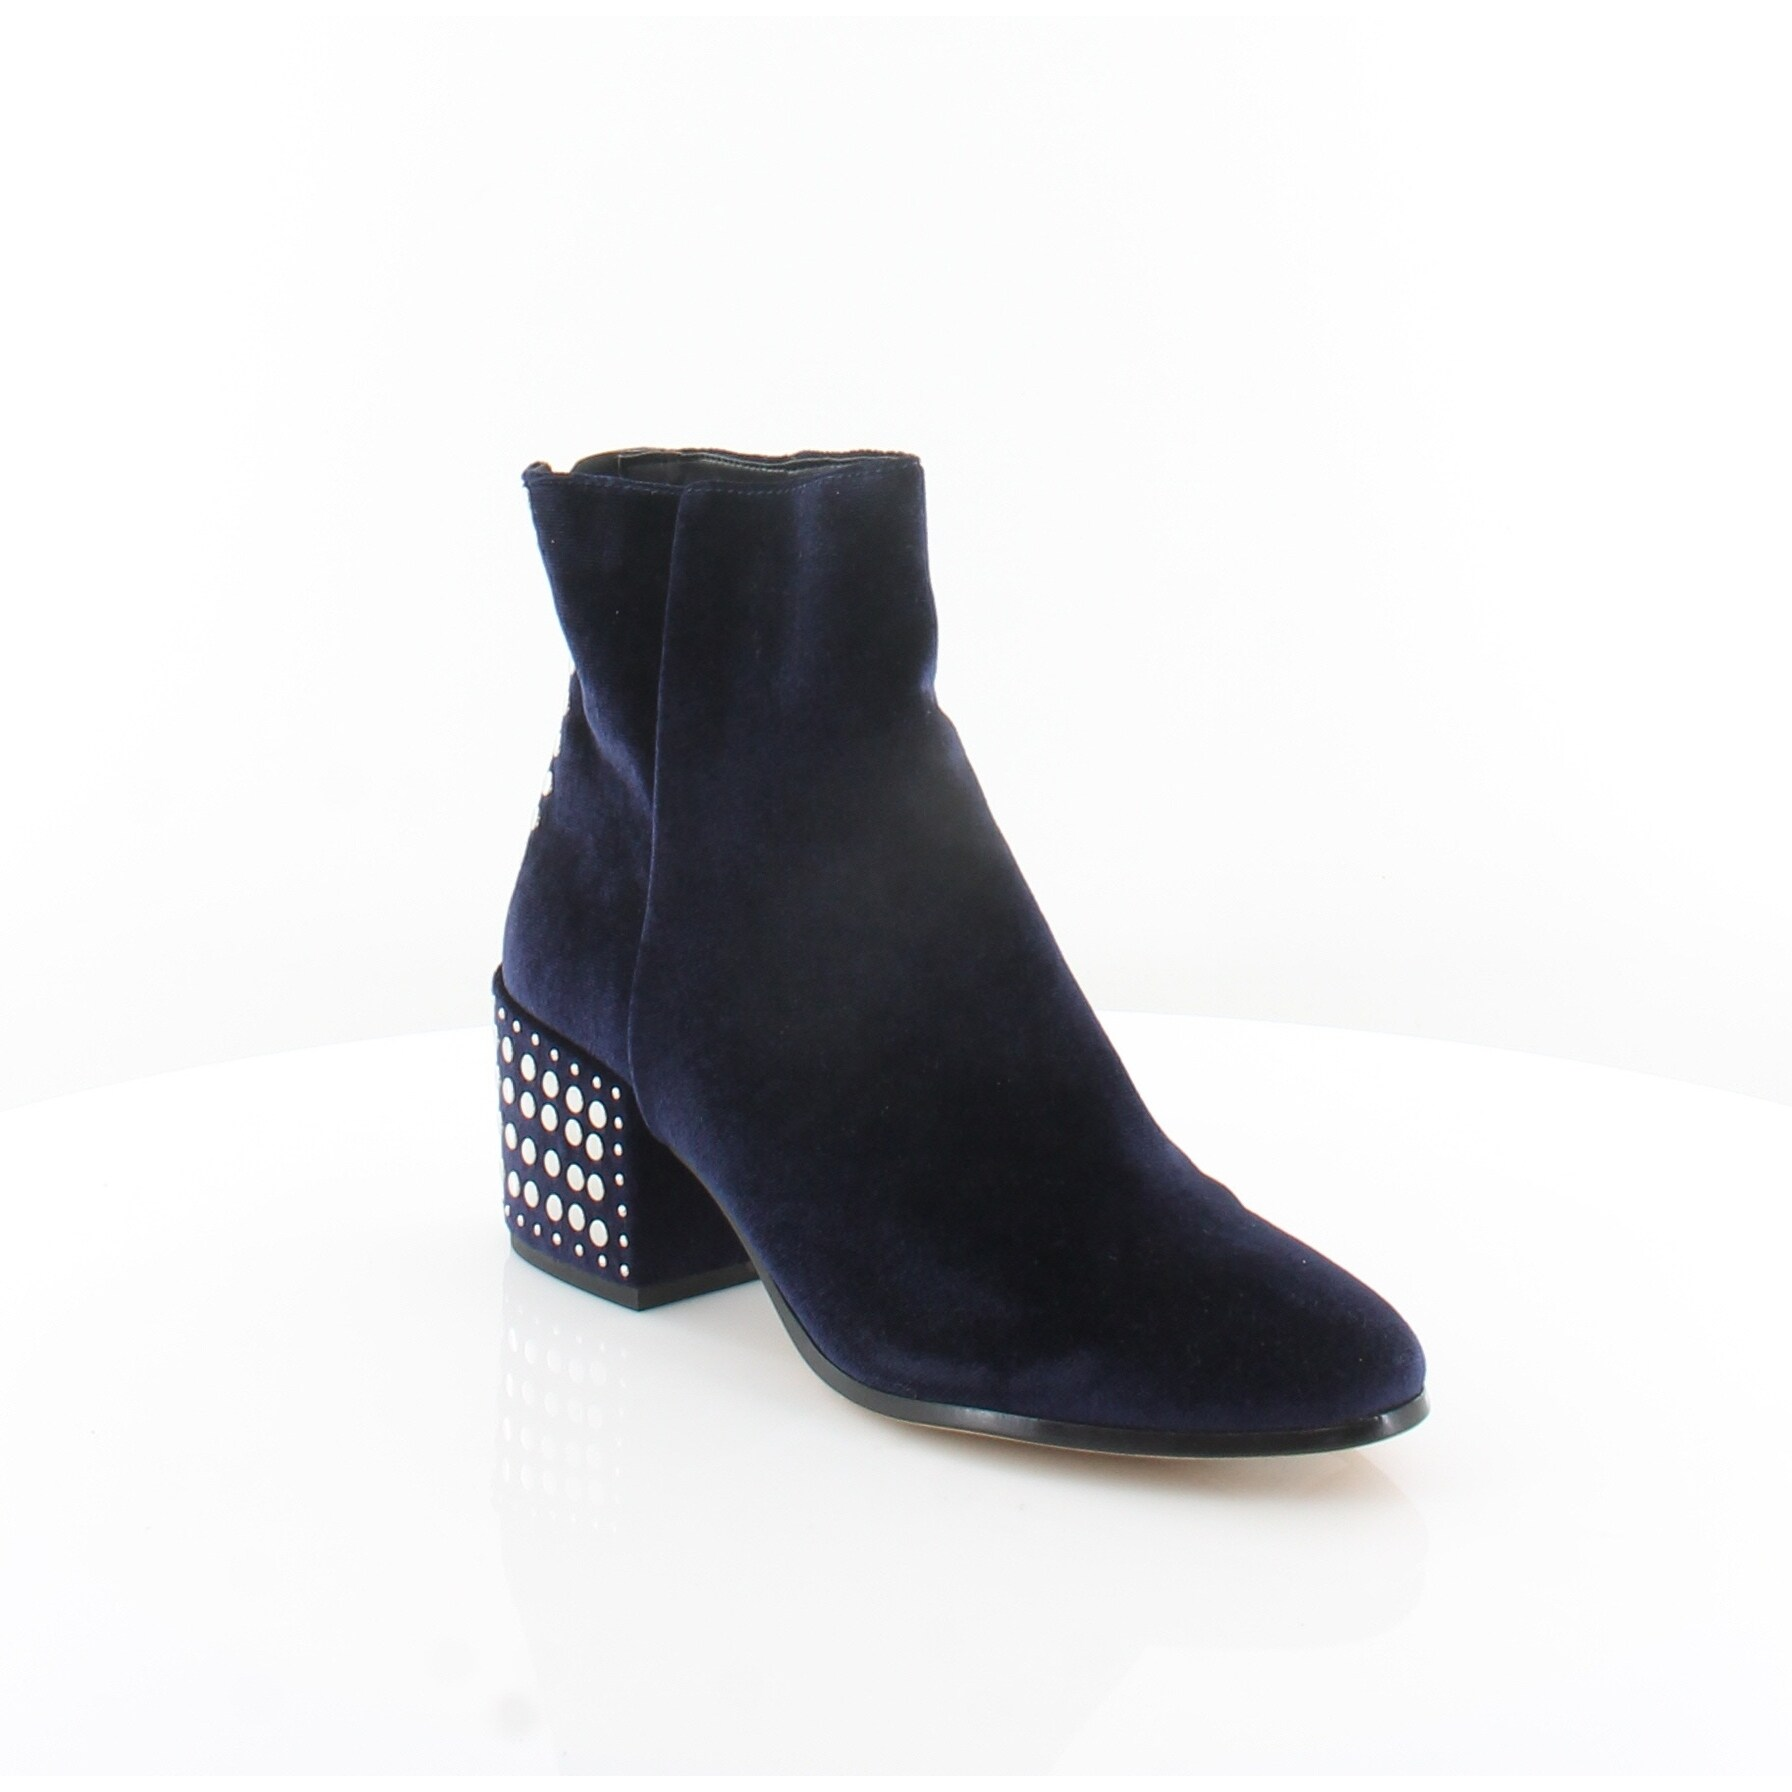 12f5ce358 Shop Dolce Vita Mazey Women s Boots Navy - Free Shipping Today ...